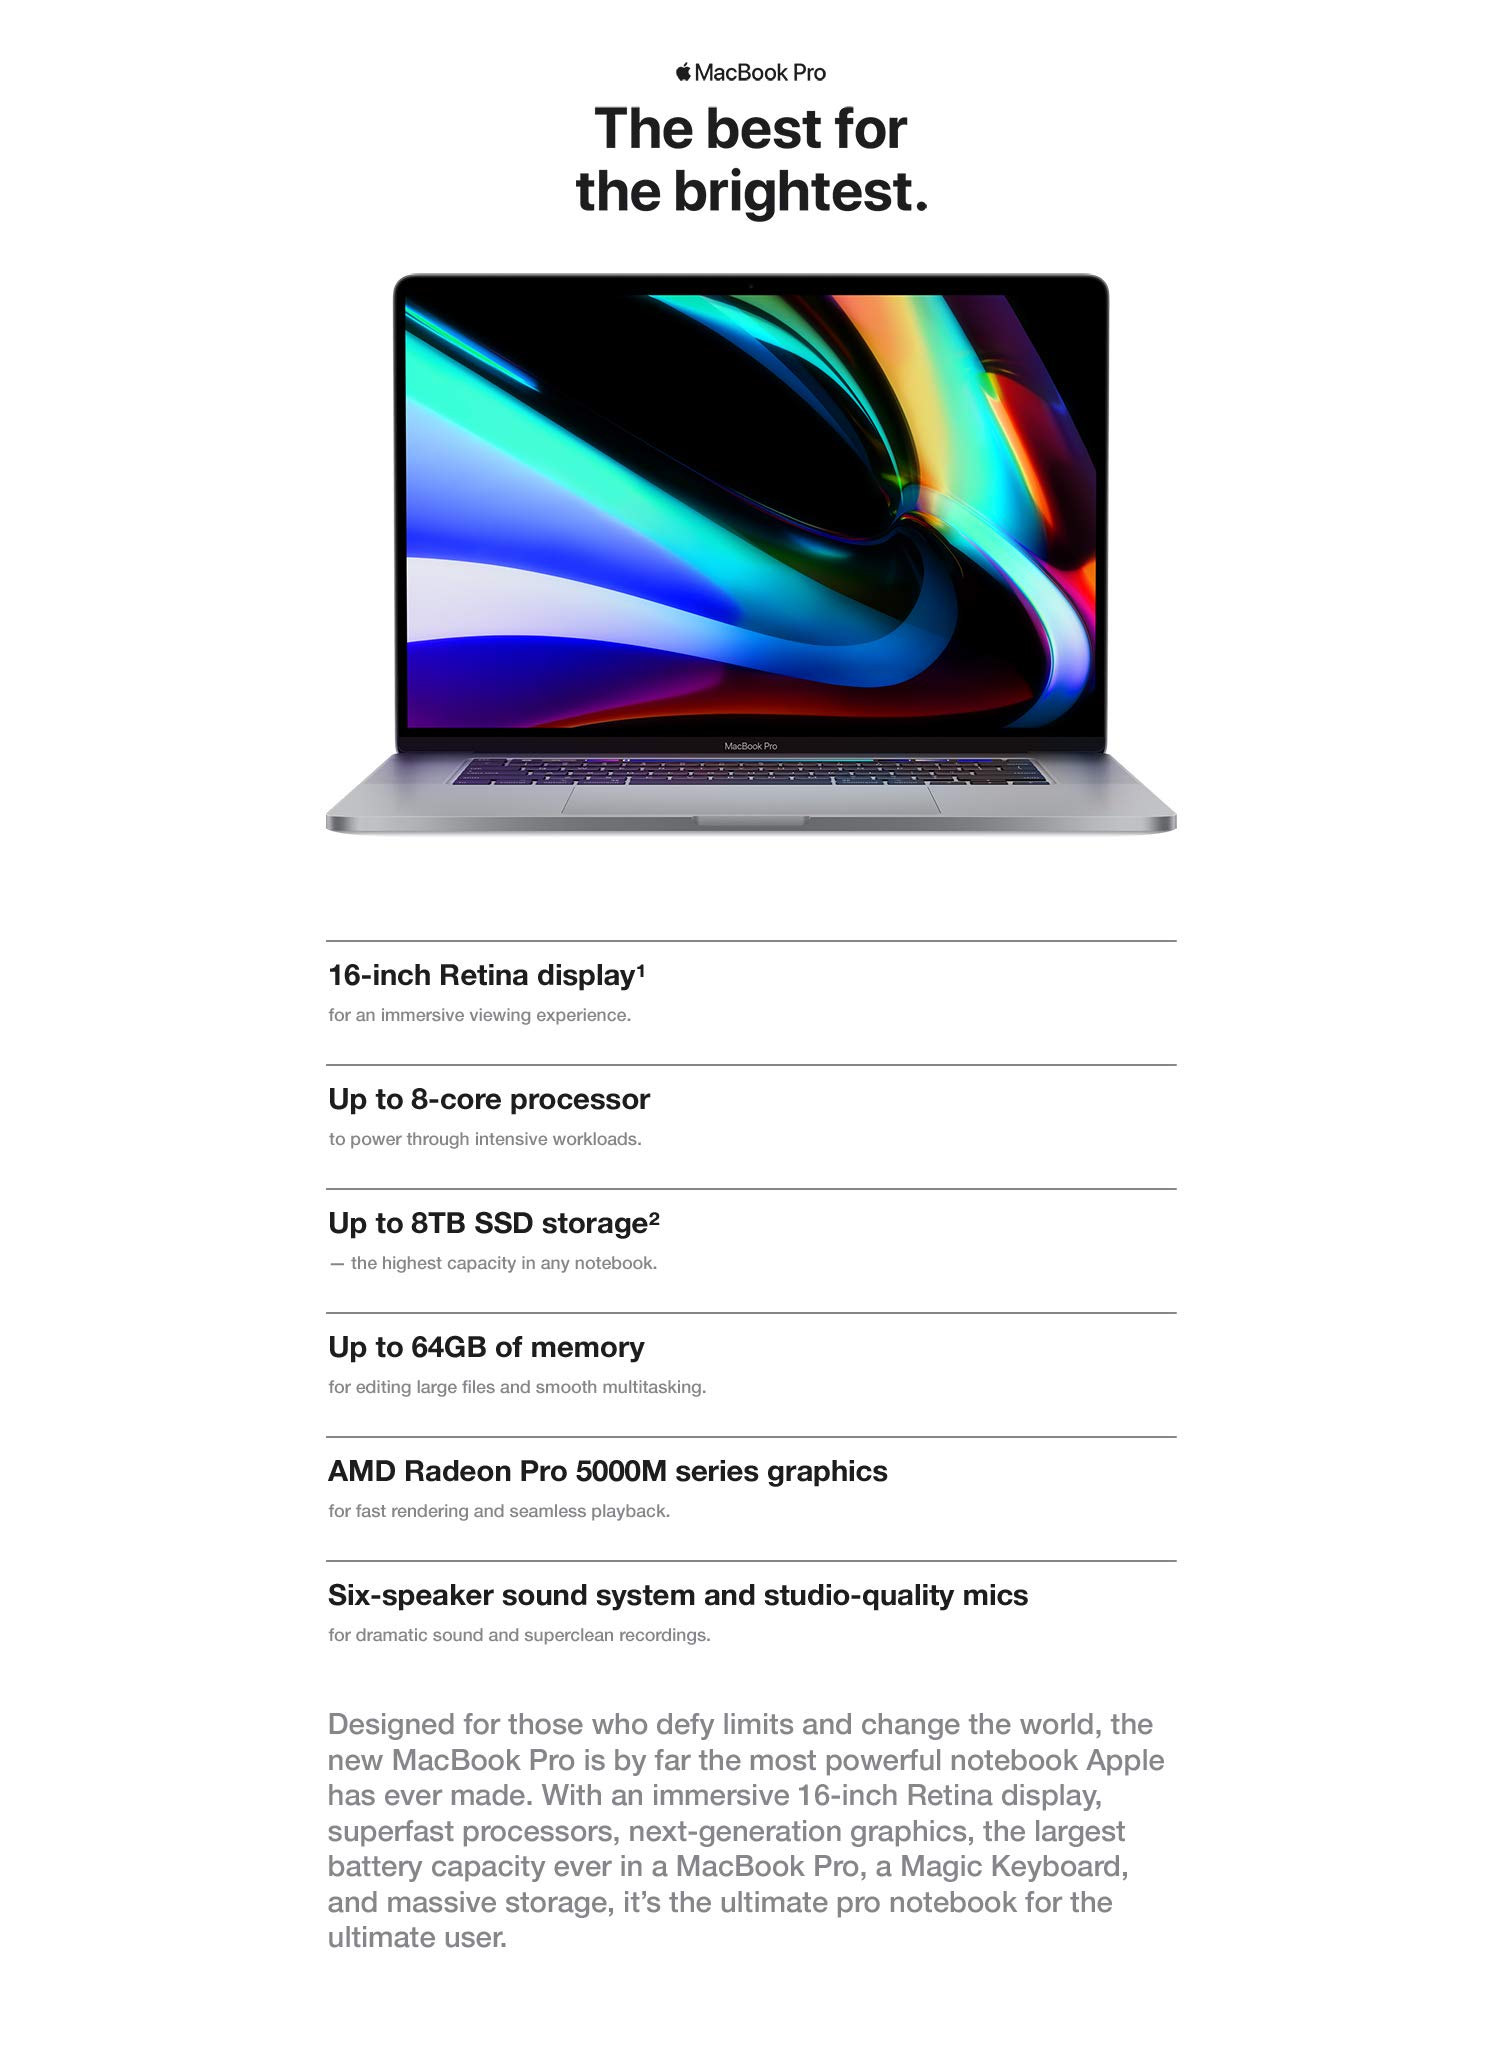 MacBook Pro. The best for the brightest. 16-inch Retina display for an immersive viewing experience.